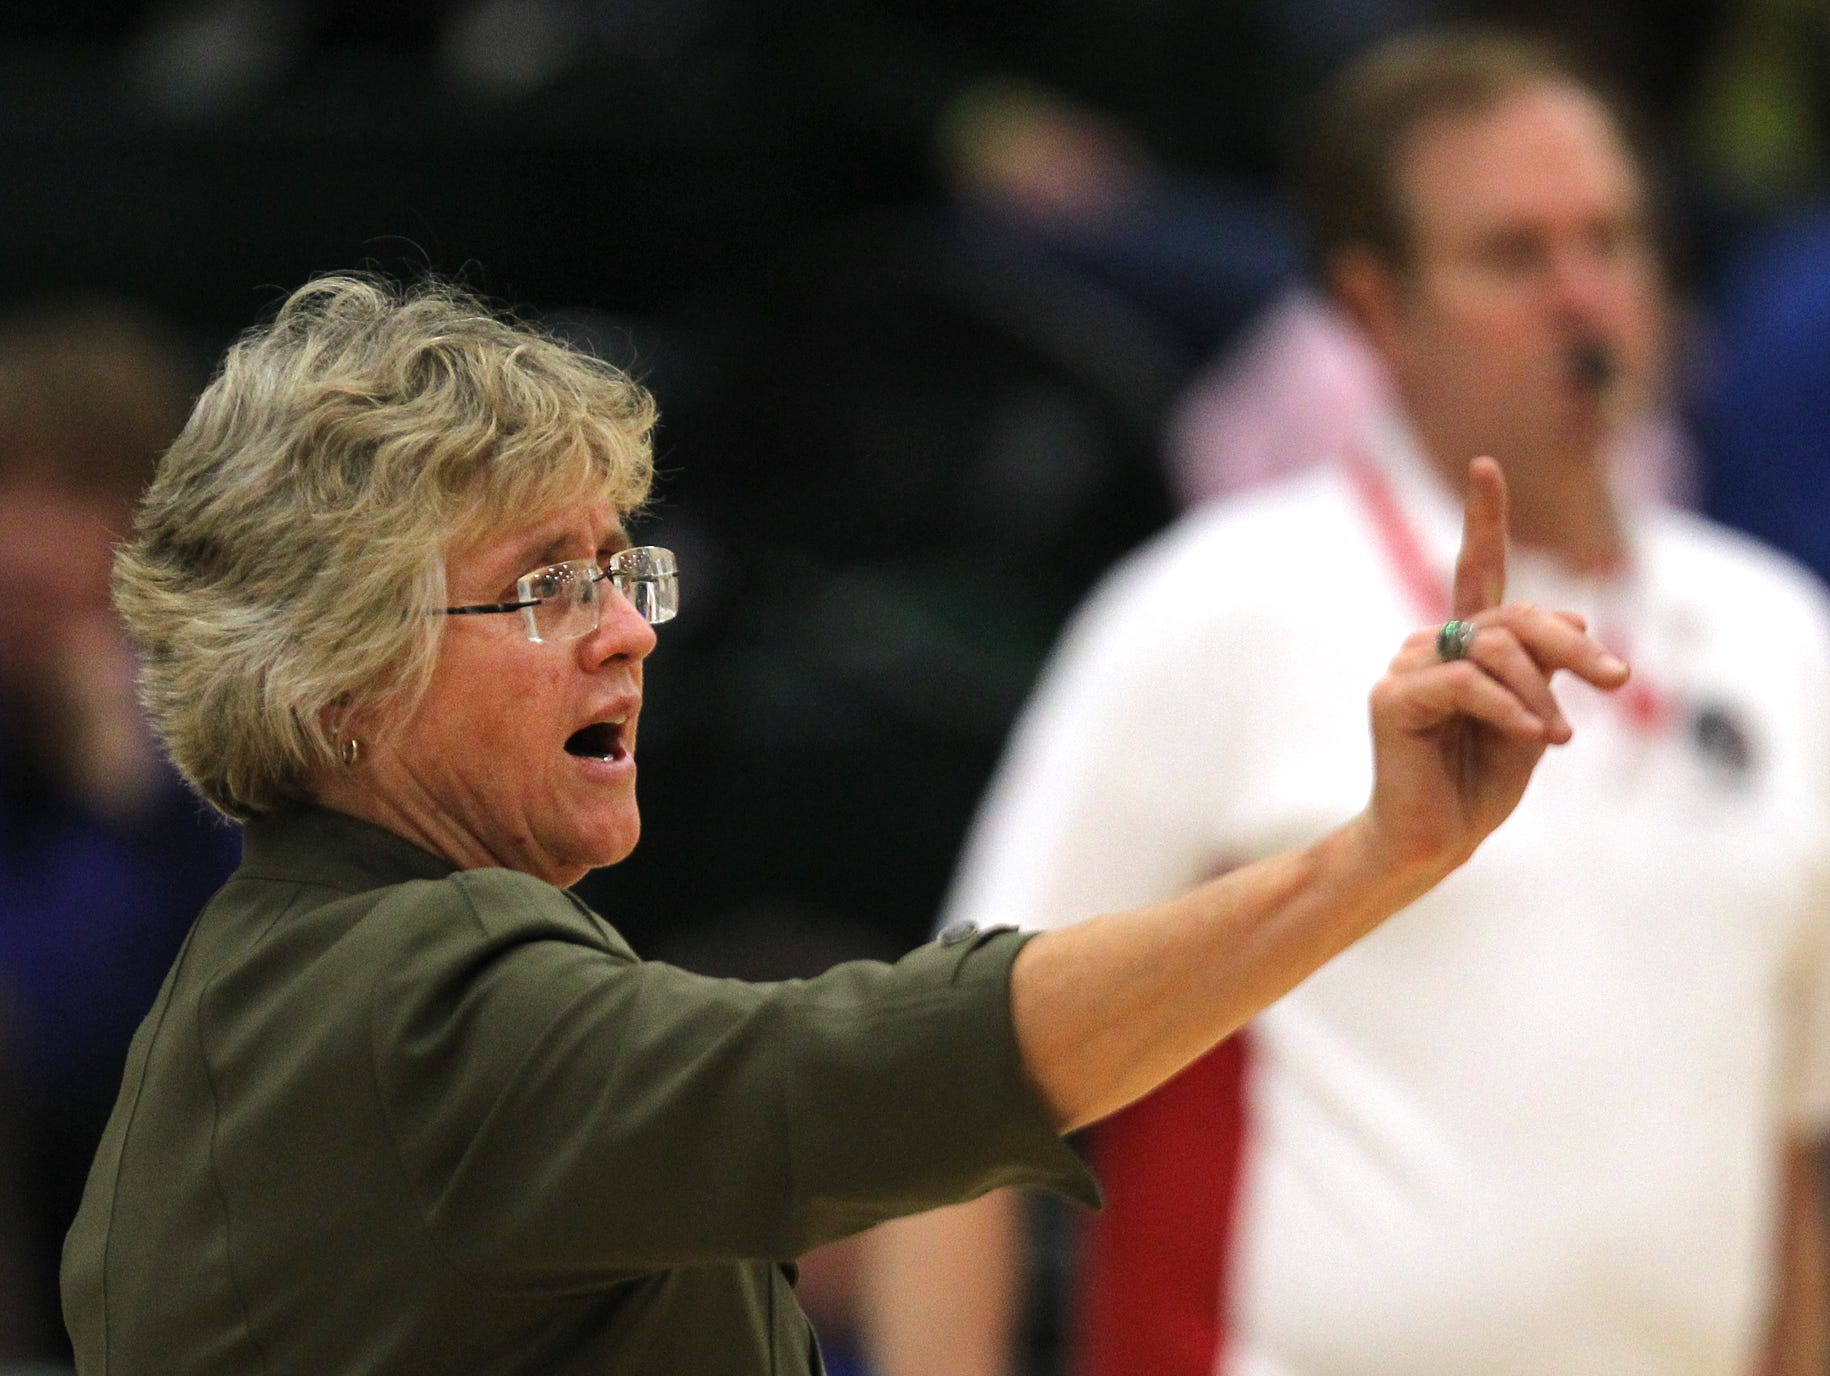 West High head coach Kathy Bresnahan directs her team during the Lady Trojans contest against Dubuque Hempstead on Tuesday evening, October 18, 2011. (Press-Citizen / Benjamin Roberts)